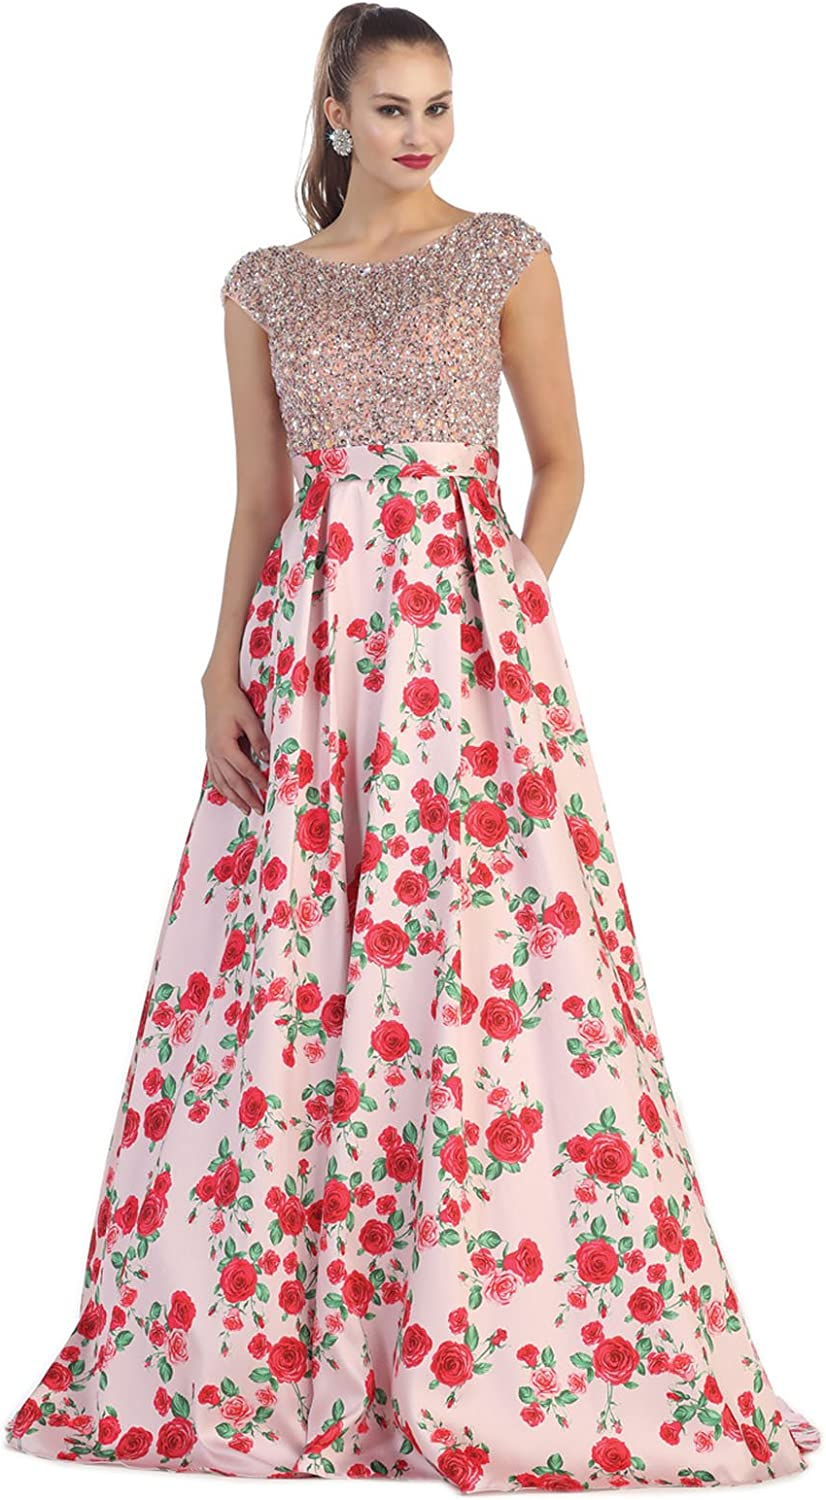 Royal Queen RQ7424 Floral Print Red Carpet Gown